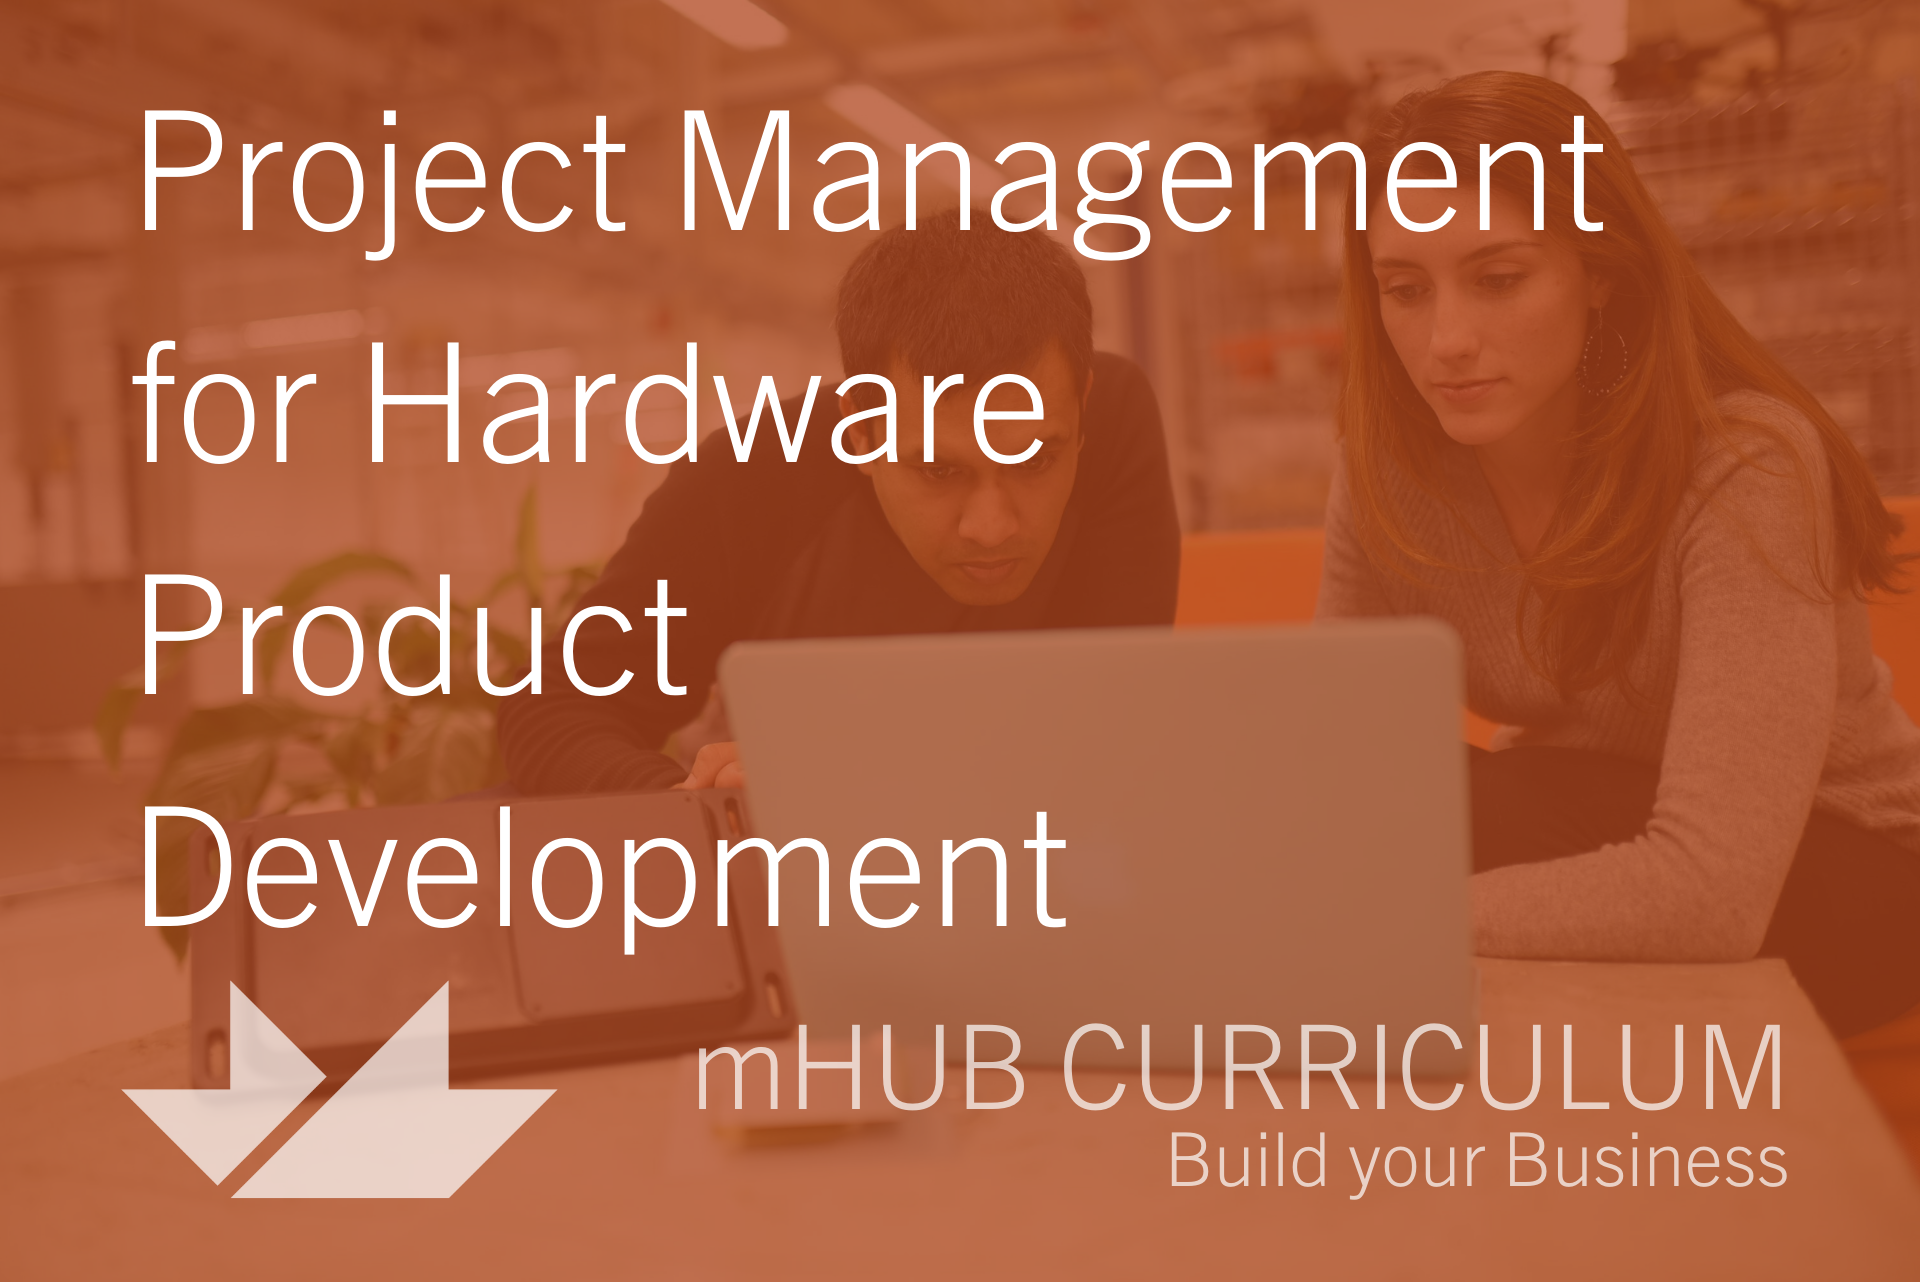 Project Management for Hardware Product Development